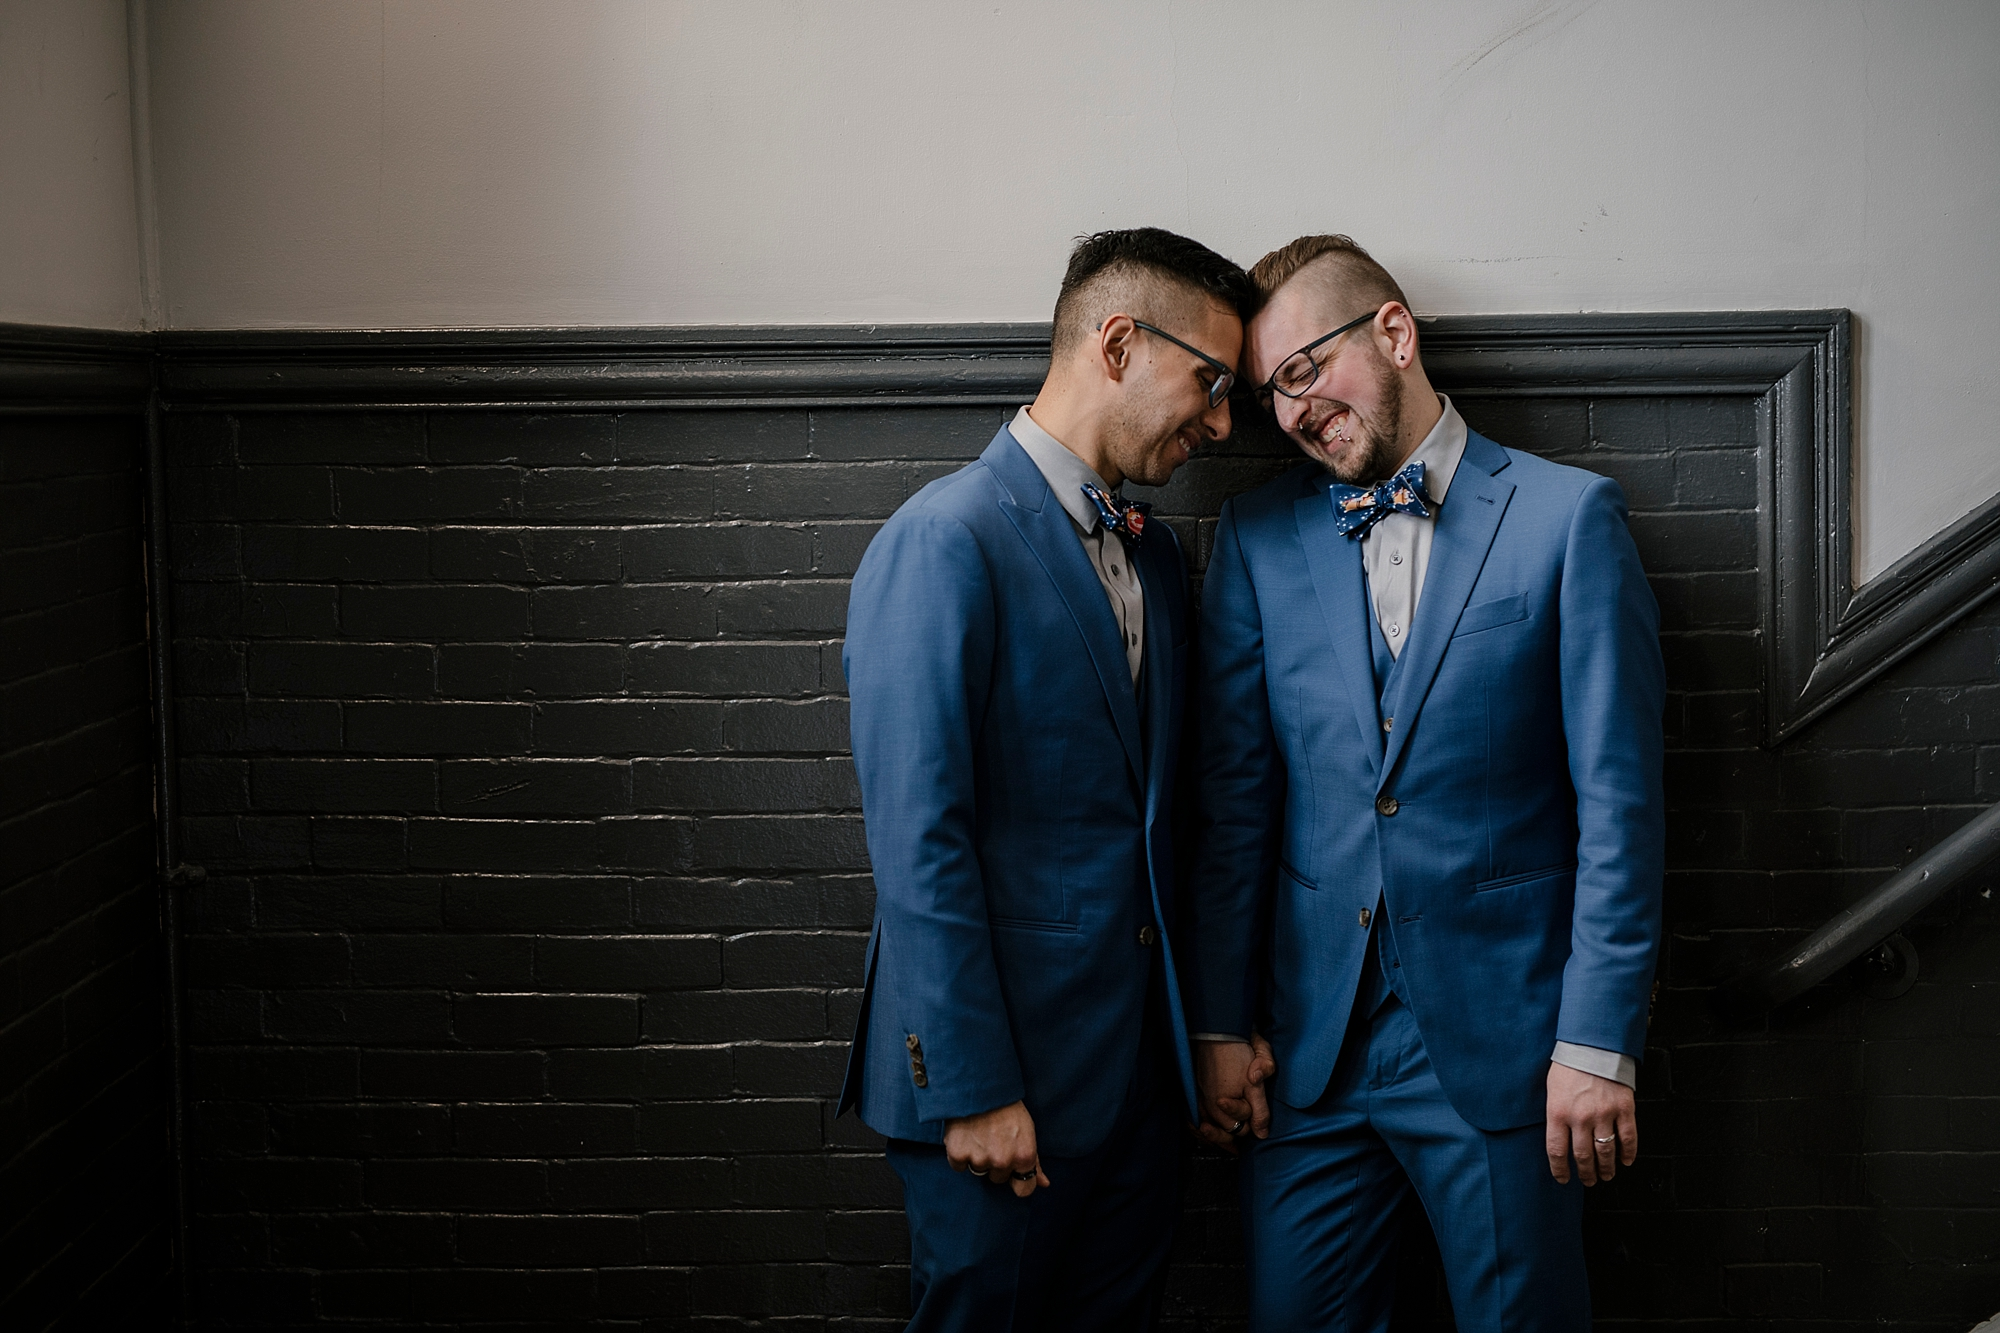 Joe_Mac_Creative_Philadelphia_Philly_LGBT_Gay_Engagement_Wedding_Photography__0108.jpg